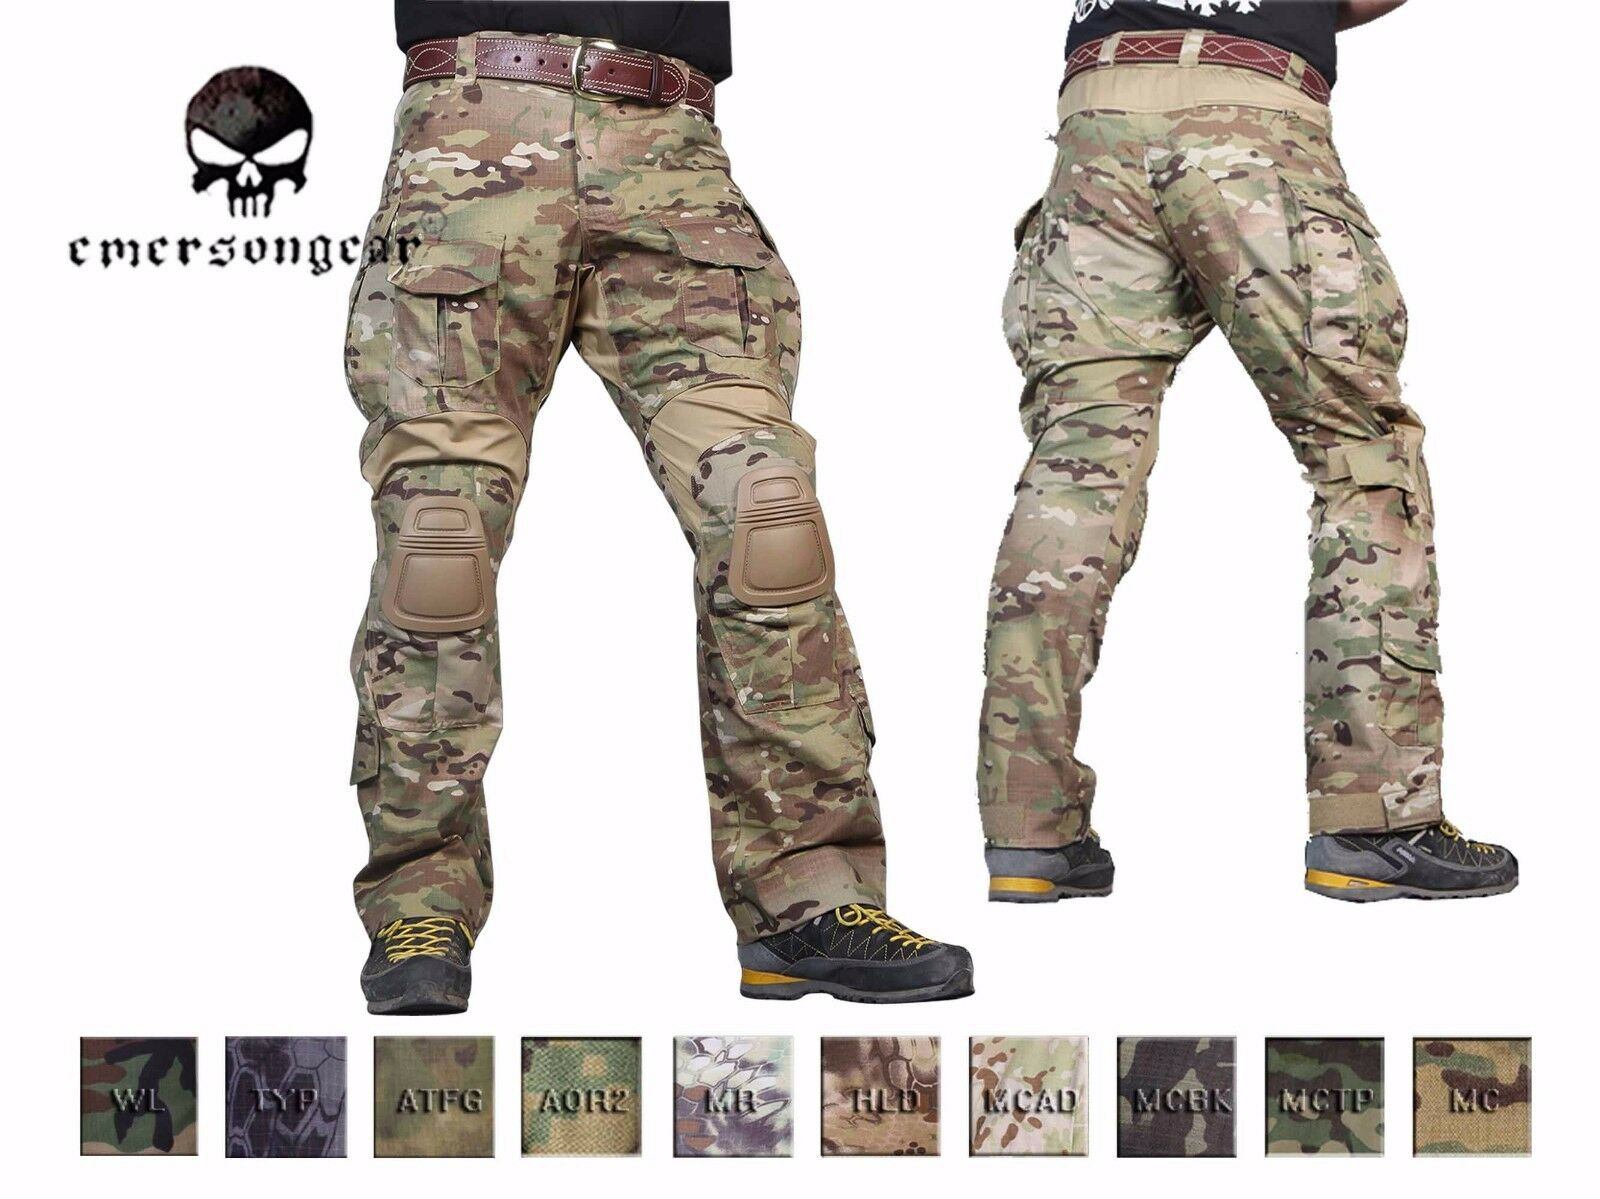 Emerson Combat Gen3 Pants with Knee Pad Airsoft Hunting Tactical Pants